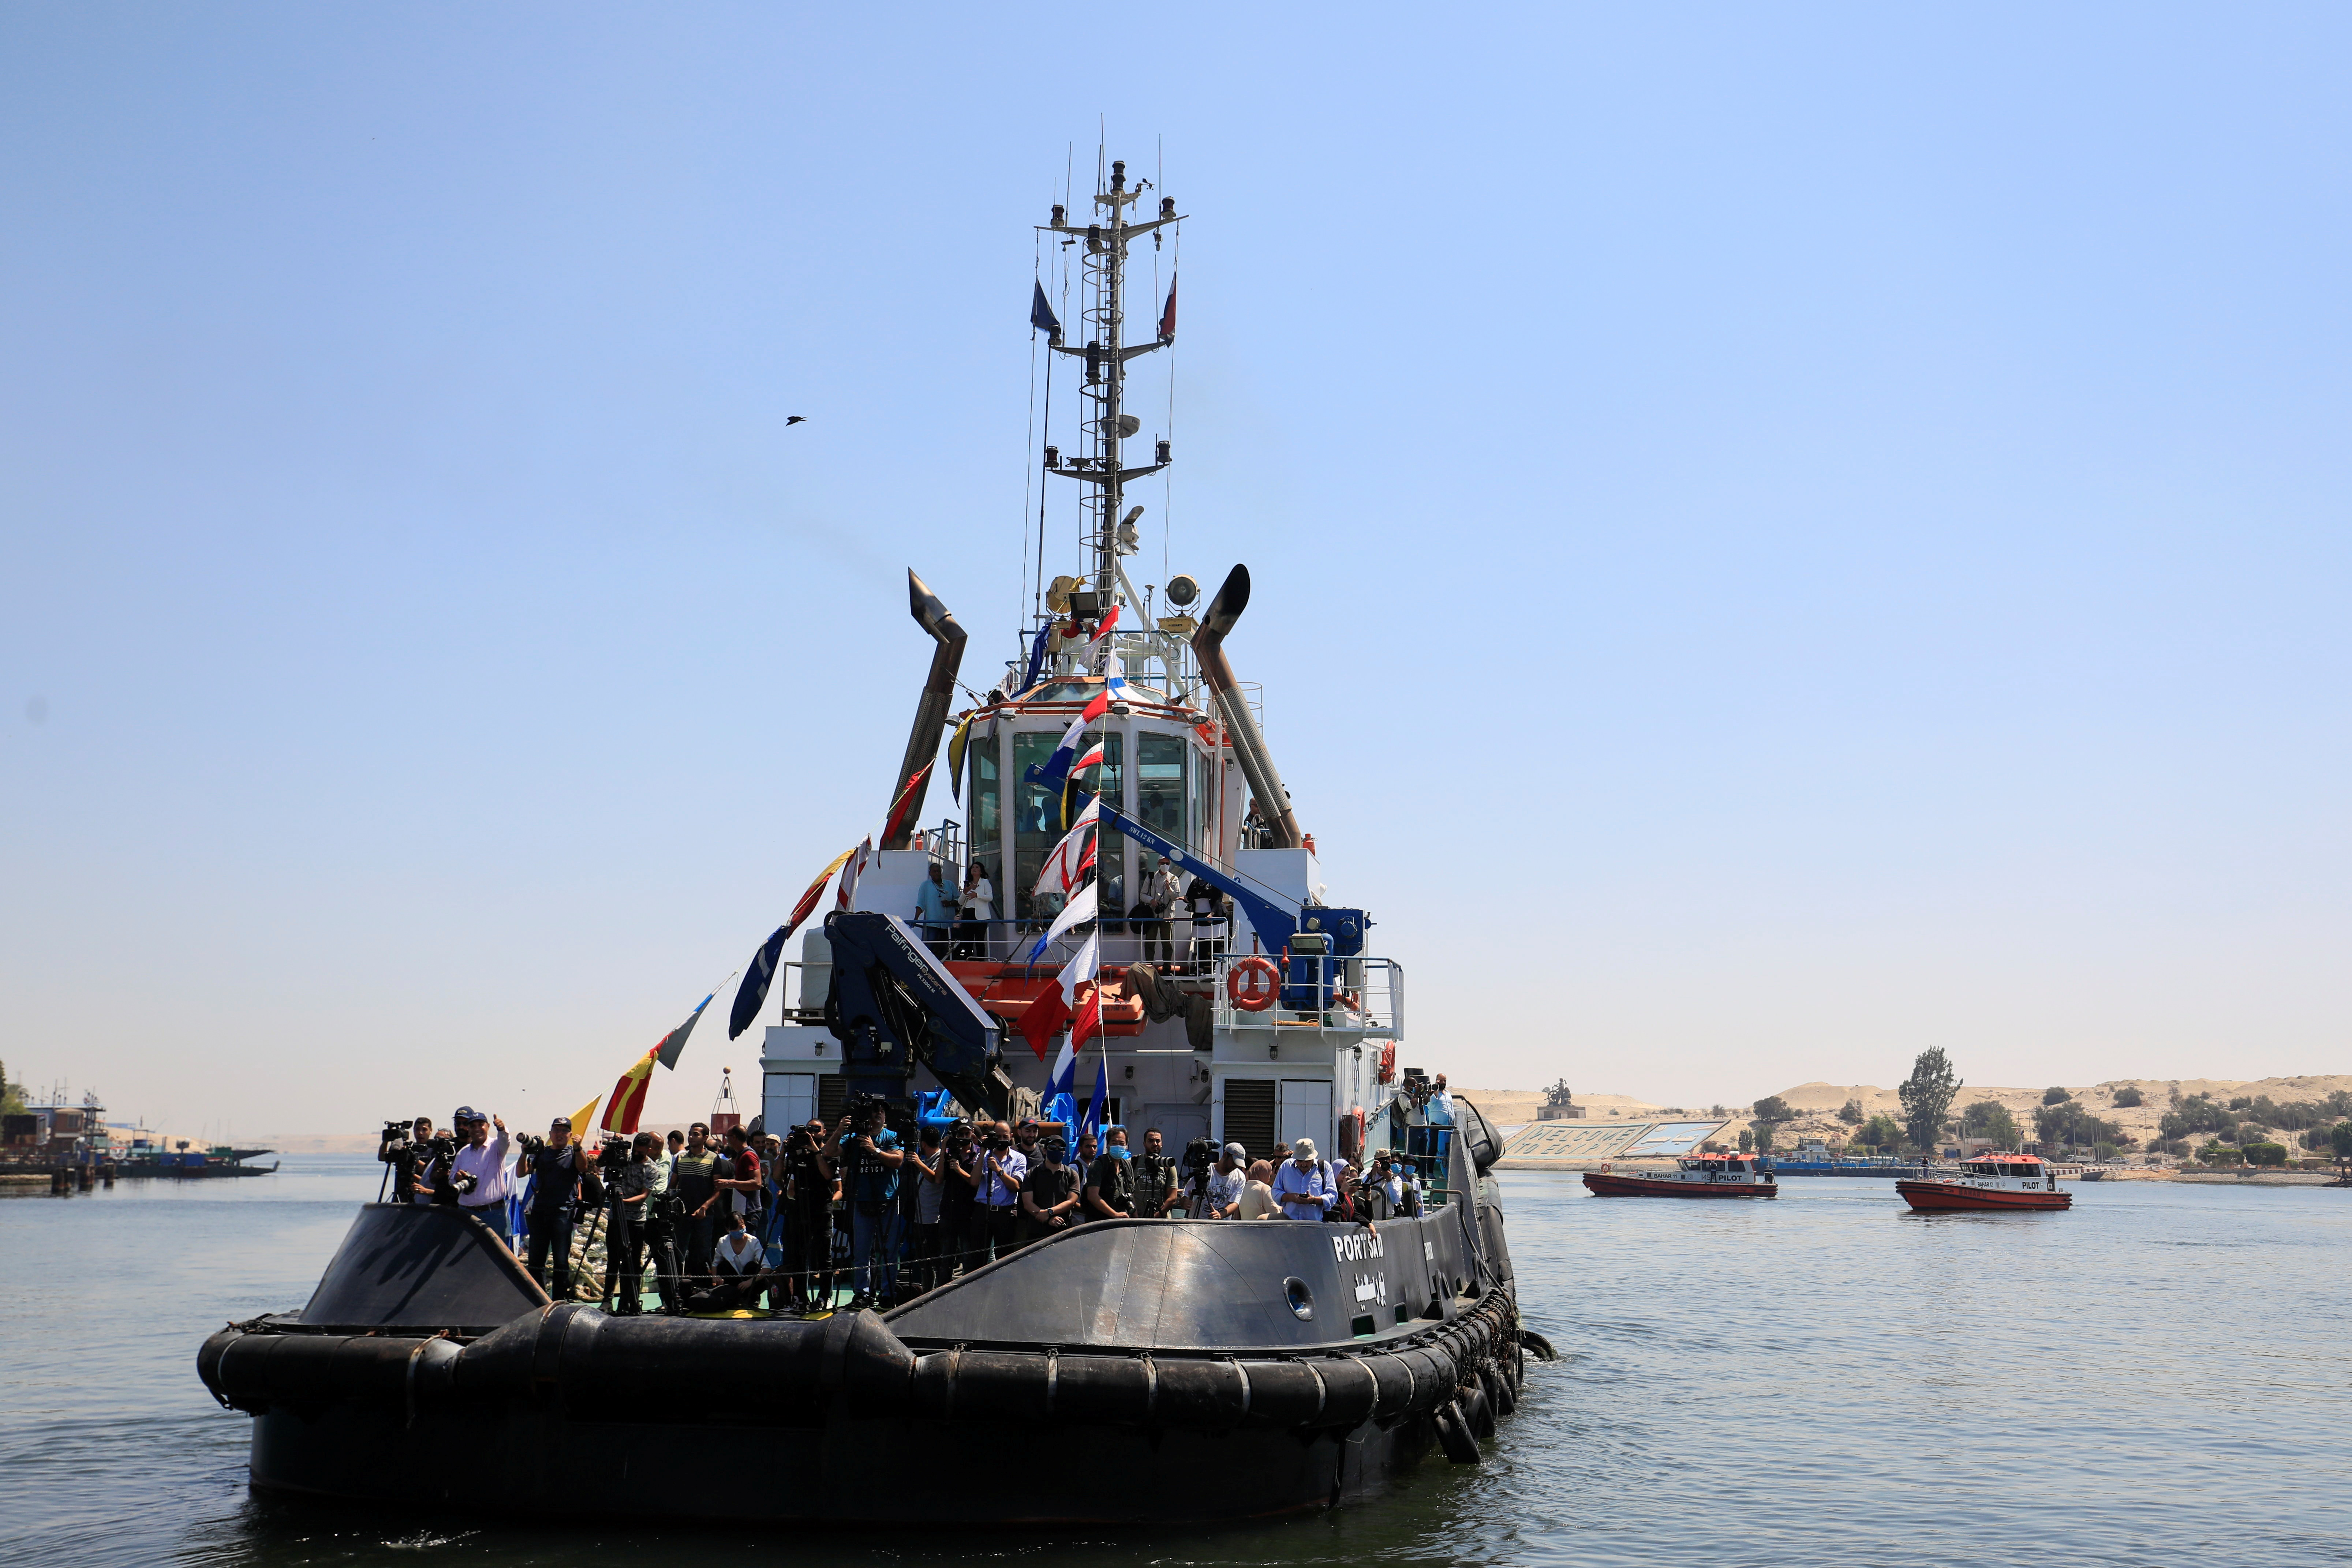 Members of the media ride on a boat on their way to the area where the Ever Given, one of the world's largest container ships, sets sail to leave the Suez Canal after the canal authority reached a settlement with the vessel's owner and insurers, in Ismailia, Egypt, July 7, 2021. REUTERS/Amr Abdallah Dalsh